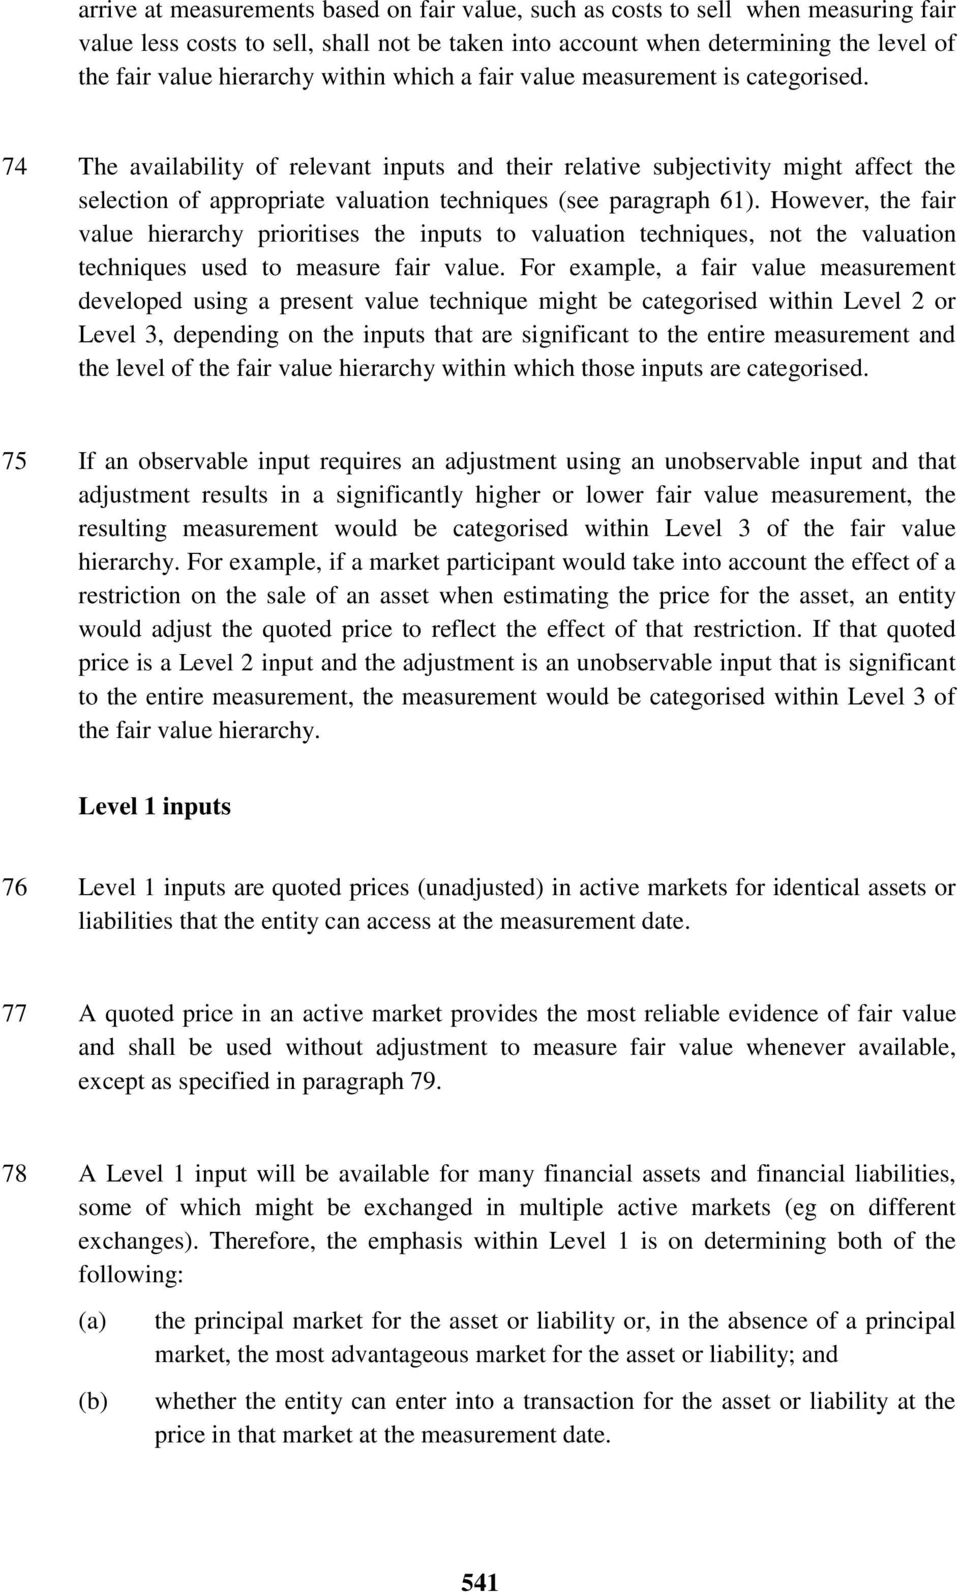 74 The availability of relevant inputs and their relative subjectivity might affect the selection of appropriate valuation techniques (see paragraph 61).